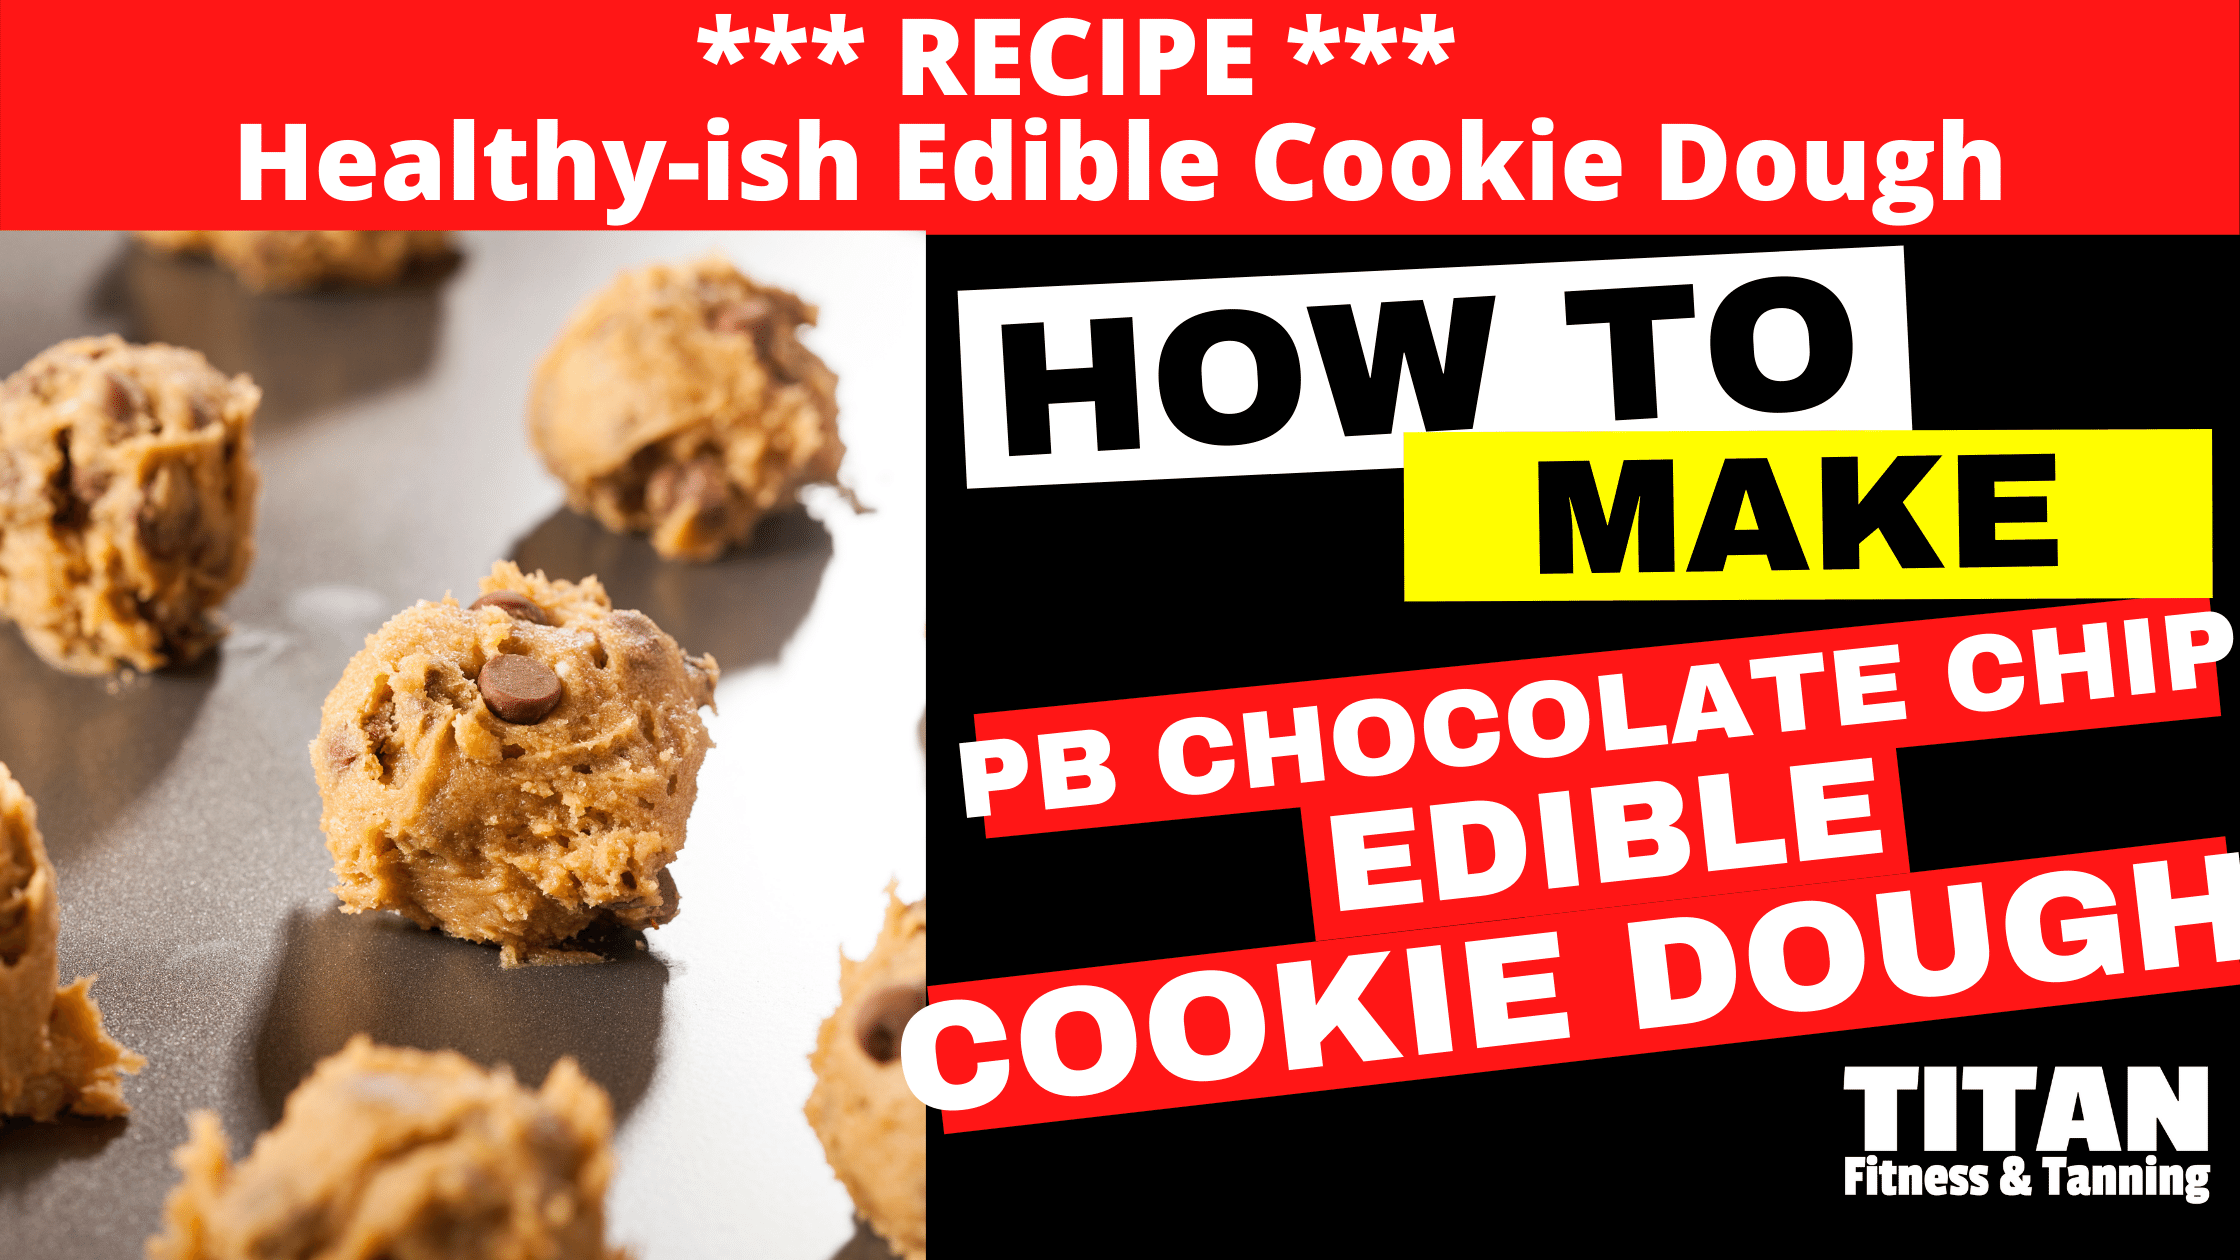 Healthy-ish Peanut Butter Chocolate Chip Edible Cookie Dough